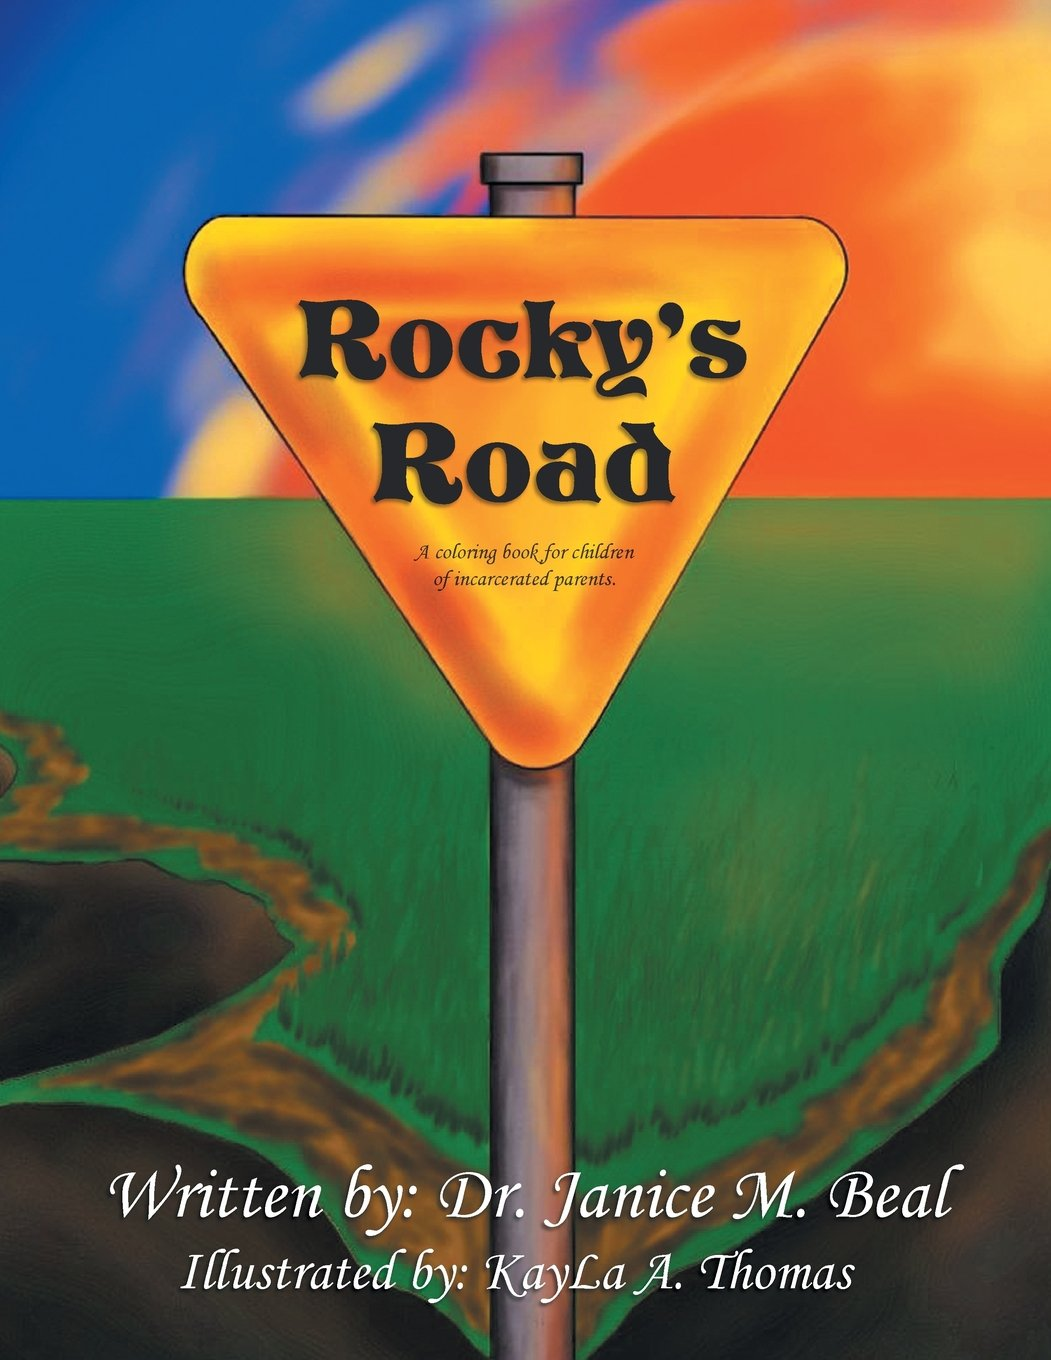 Rocky's Road: A Coloring Book for Children of Incarcerated Parents